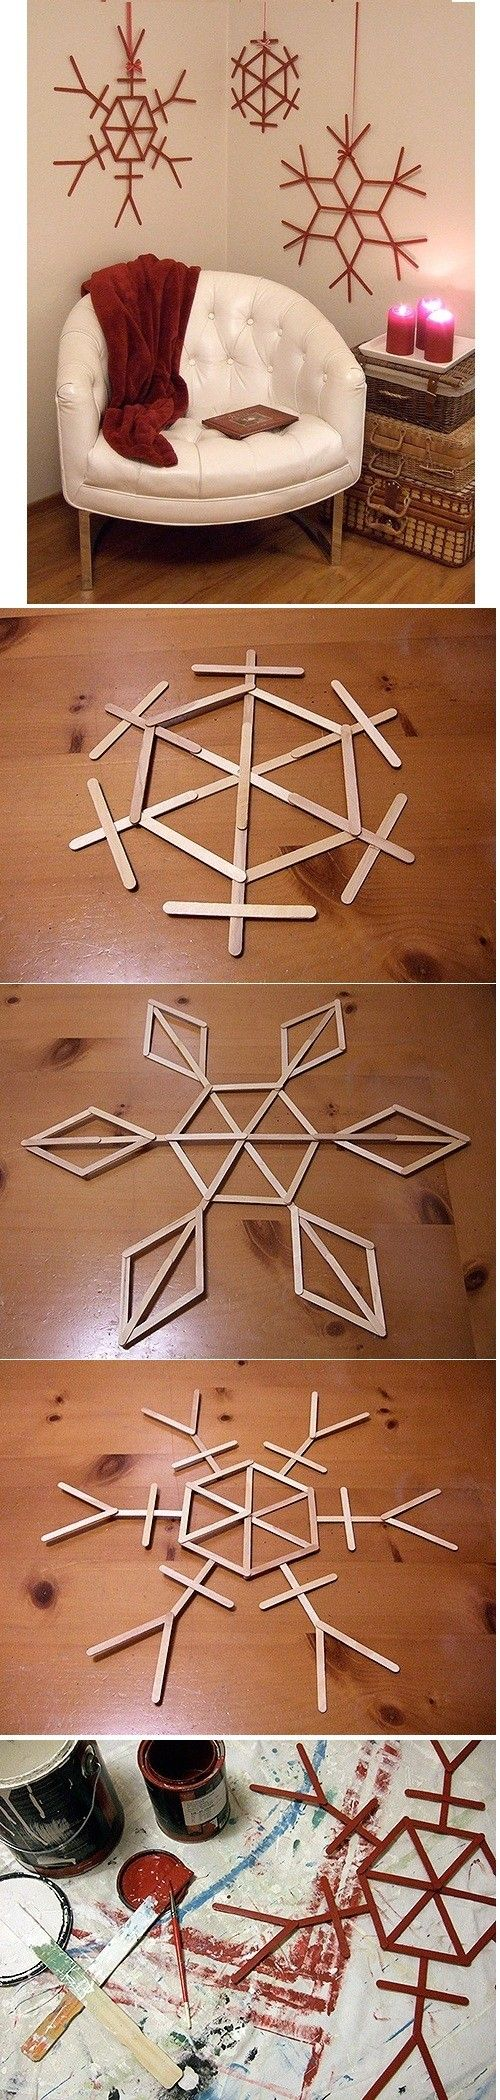 Oversized Snowflake Tutorial (use popsicle sticks) -- hang on wall or door outside, paint any color, love this!! via Crafty Nest